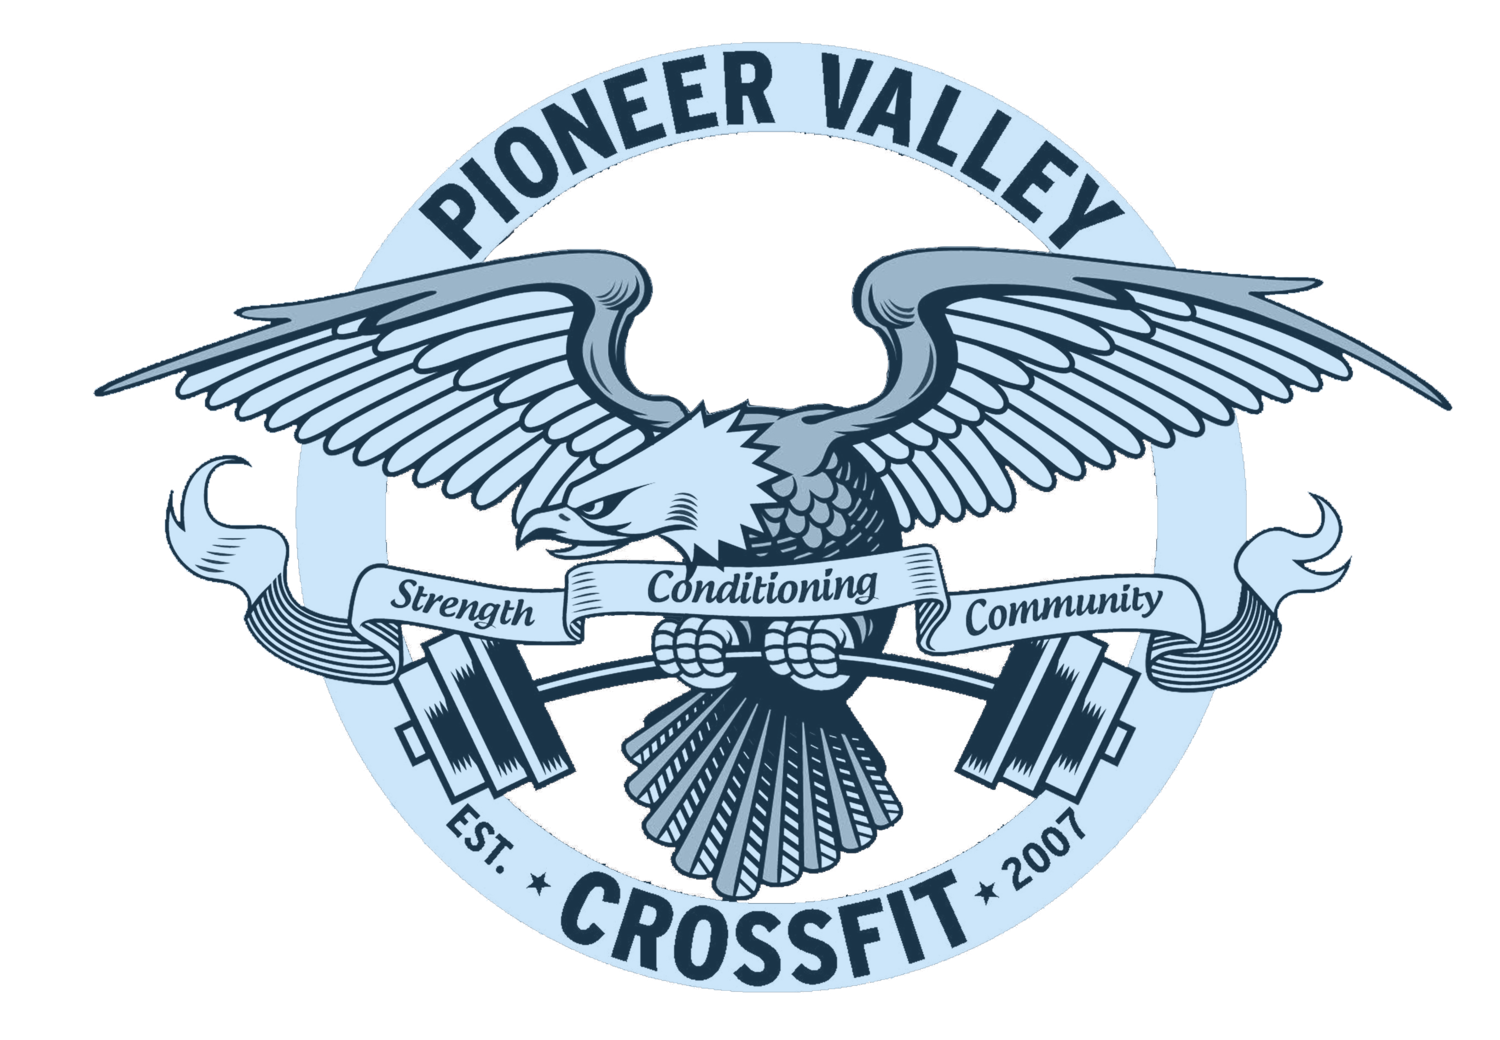 Wednesday April 19th Temple Of Doom Pioneer Valley Crossfit